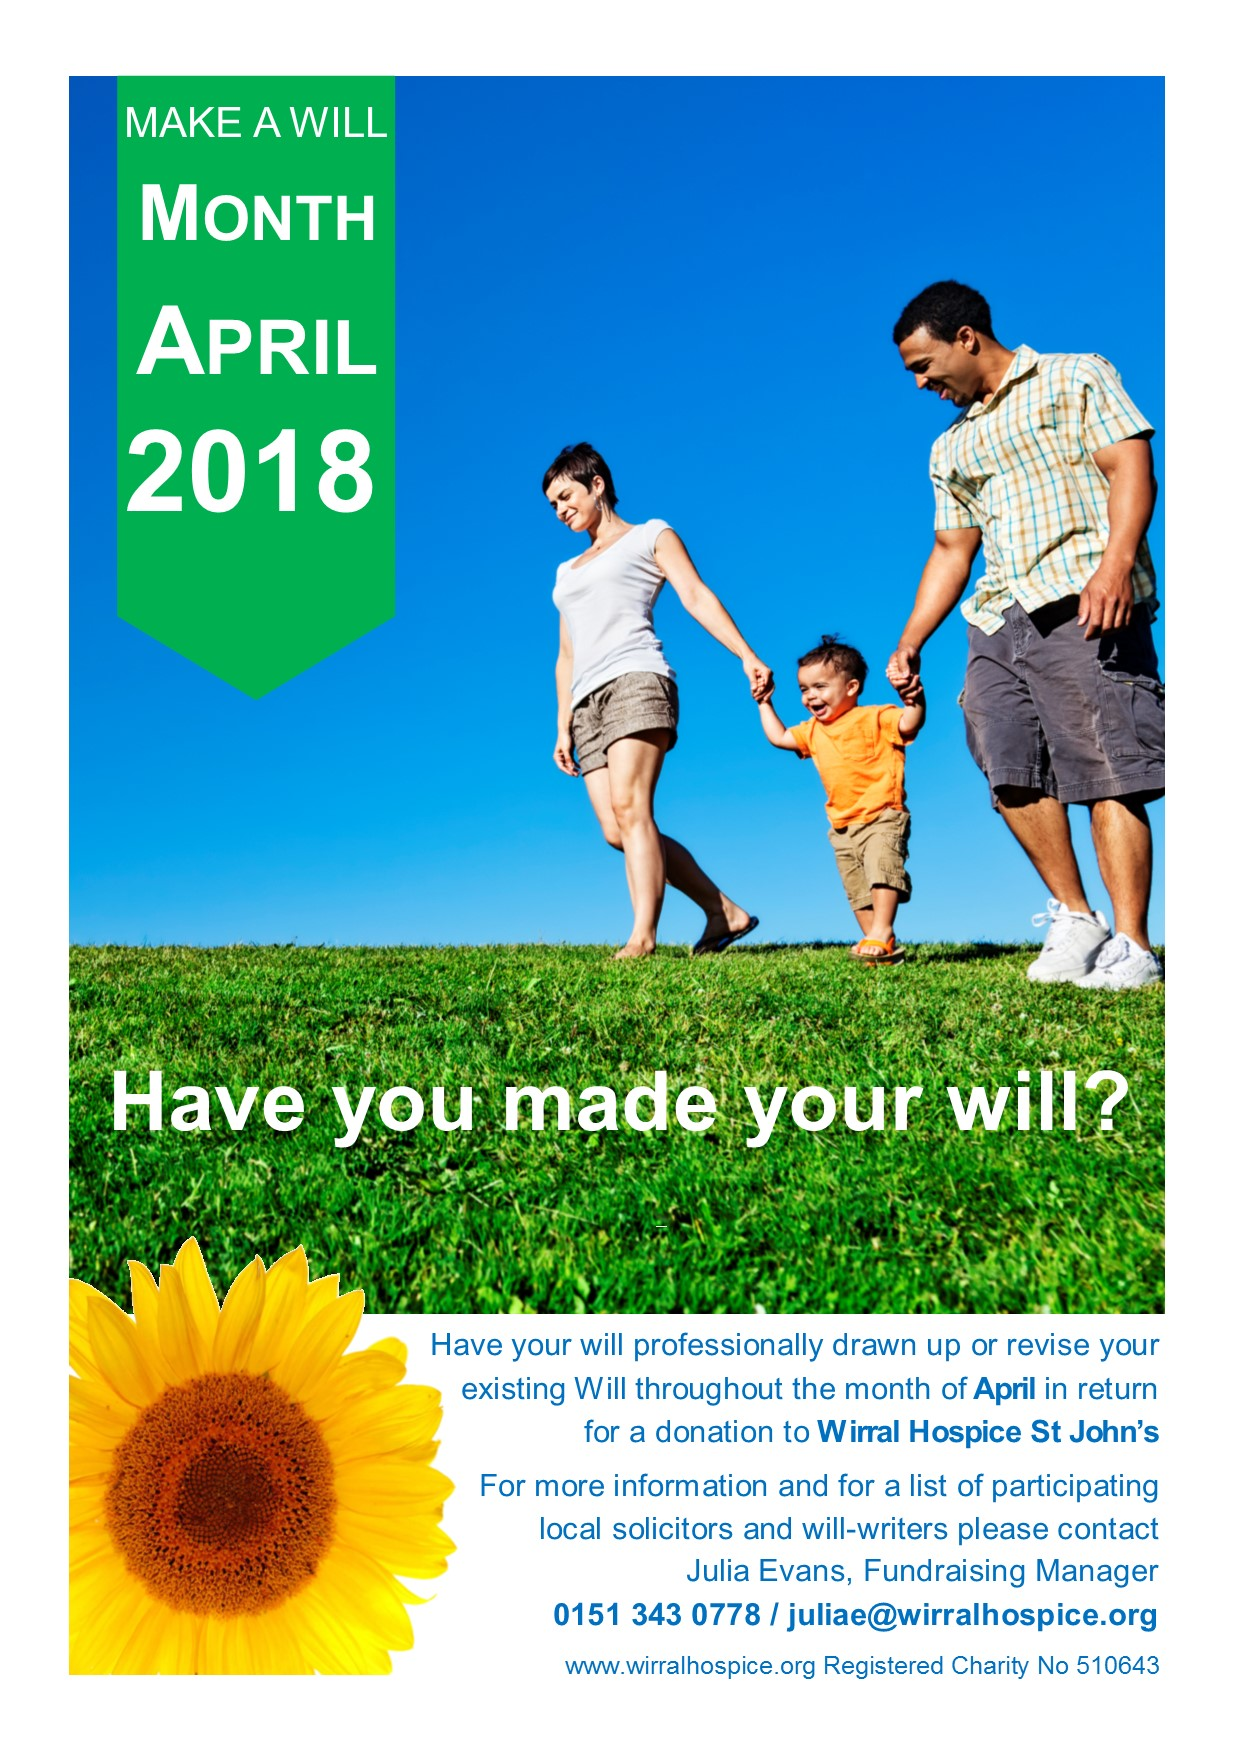 Wirral Hospice St John's Make a Will Month April